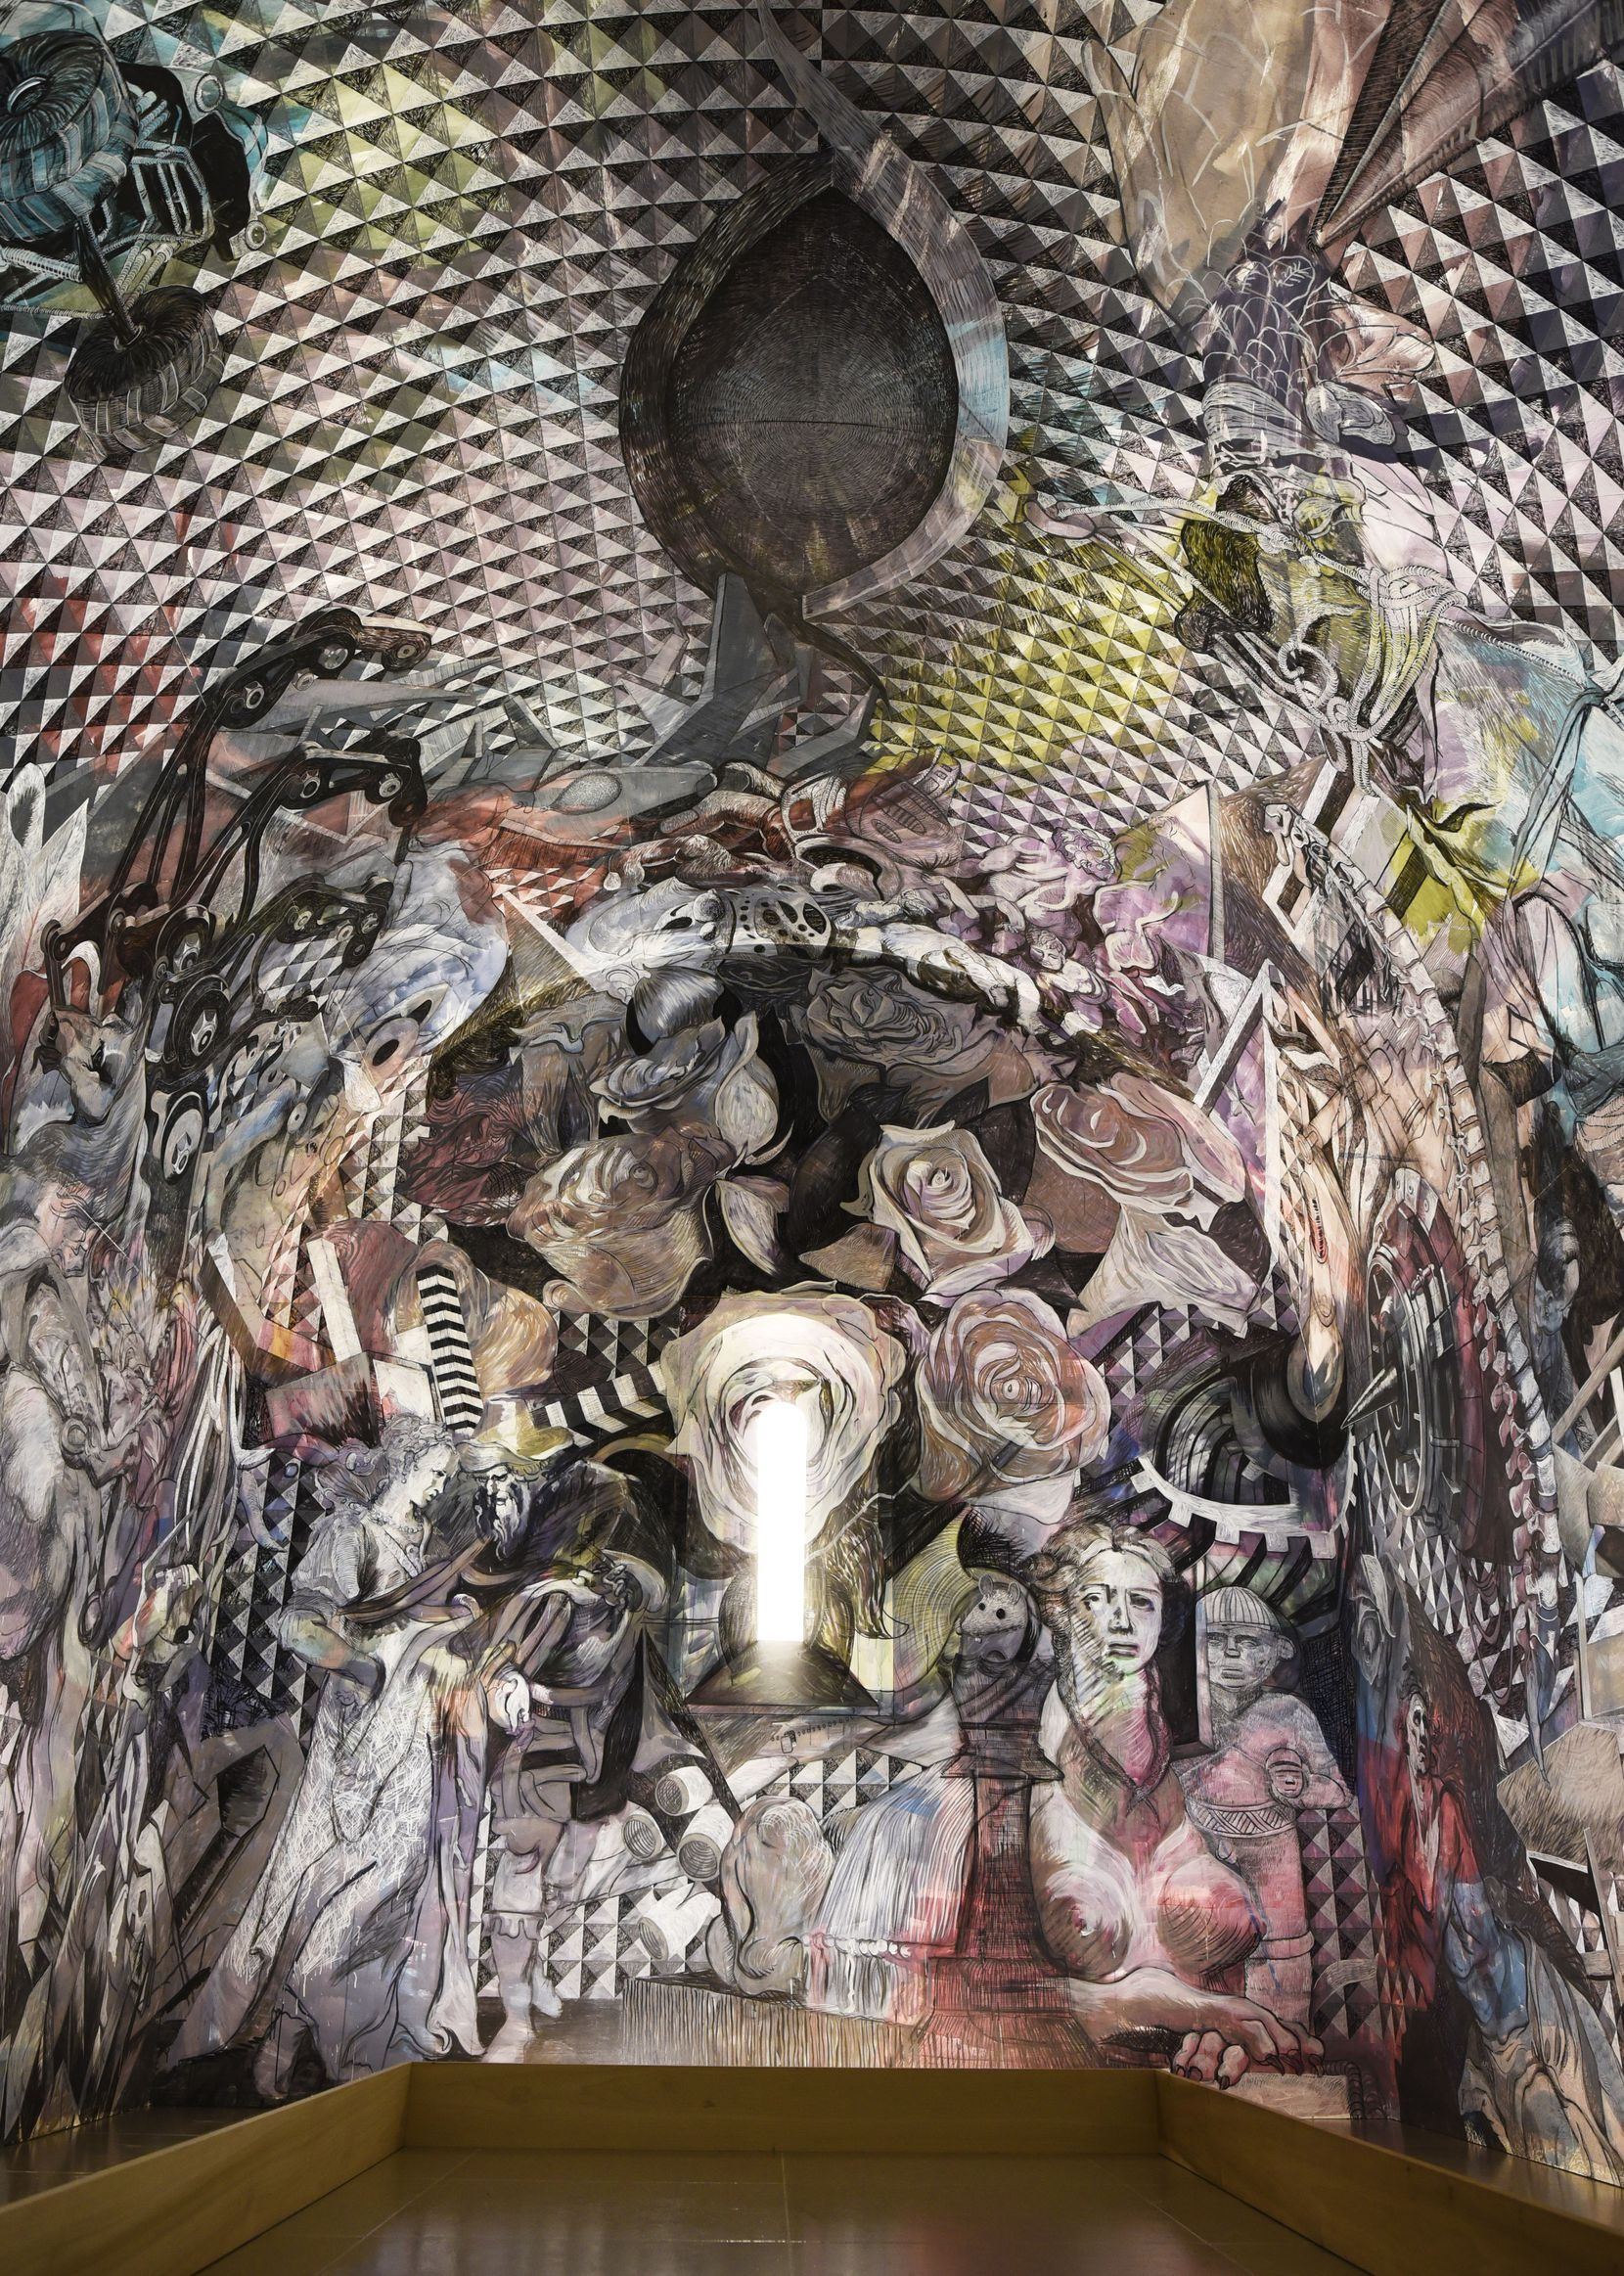 """The interior of Francisco Moreno's breathtaking """"Chapel"""" features a mind-bending mural that incorporates motifs from centuries of art history in one grand symphonic montage."""